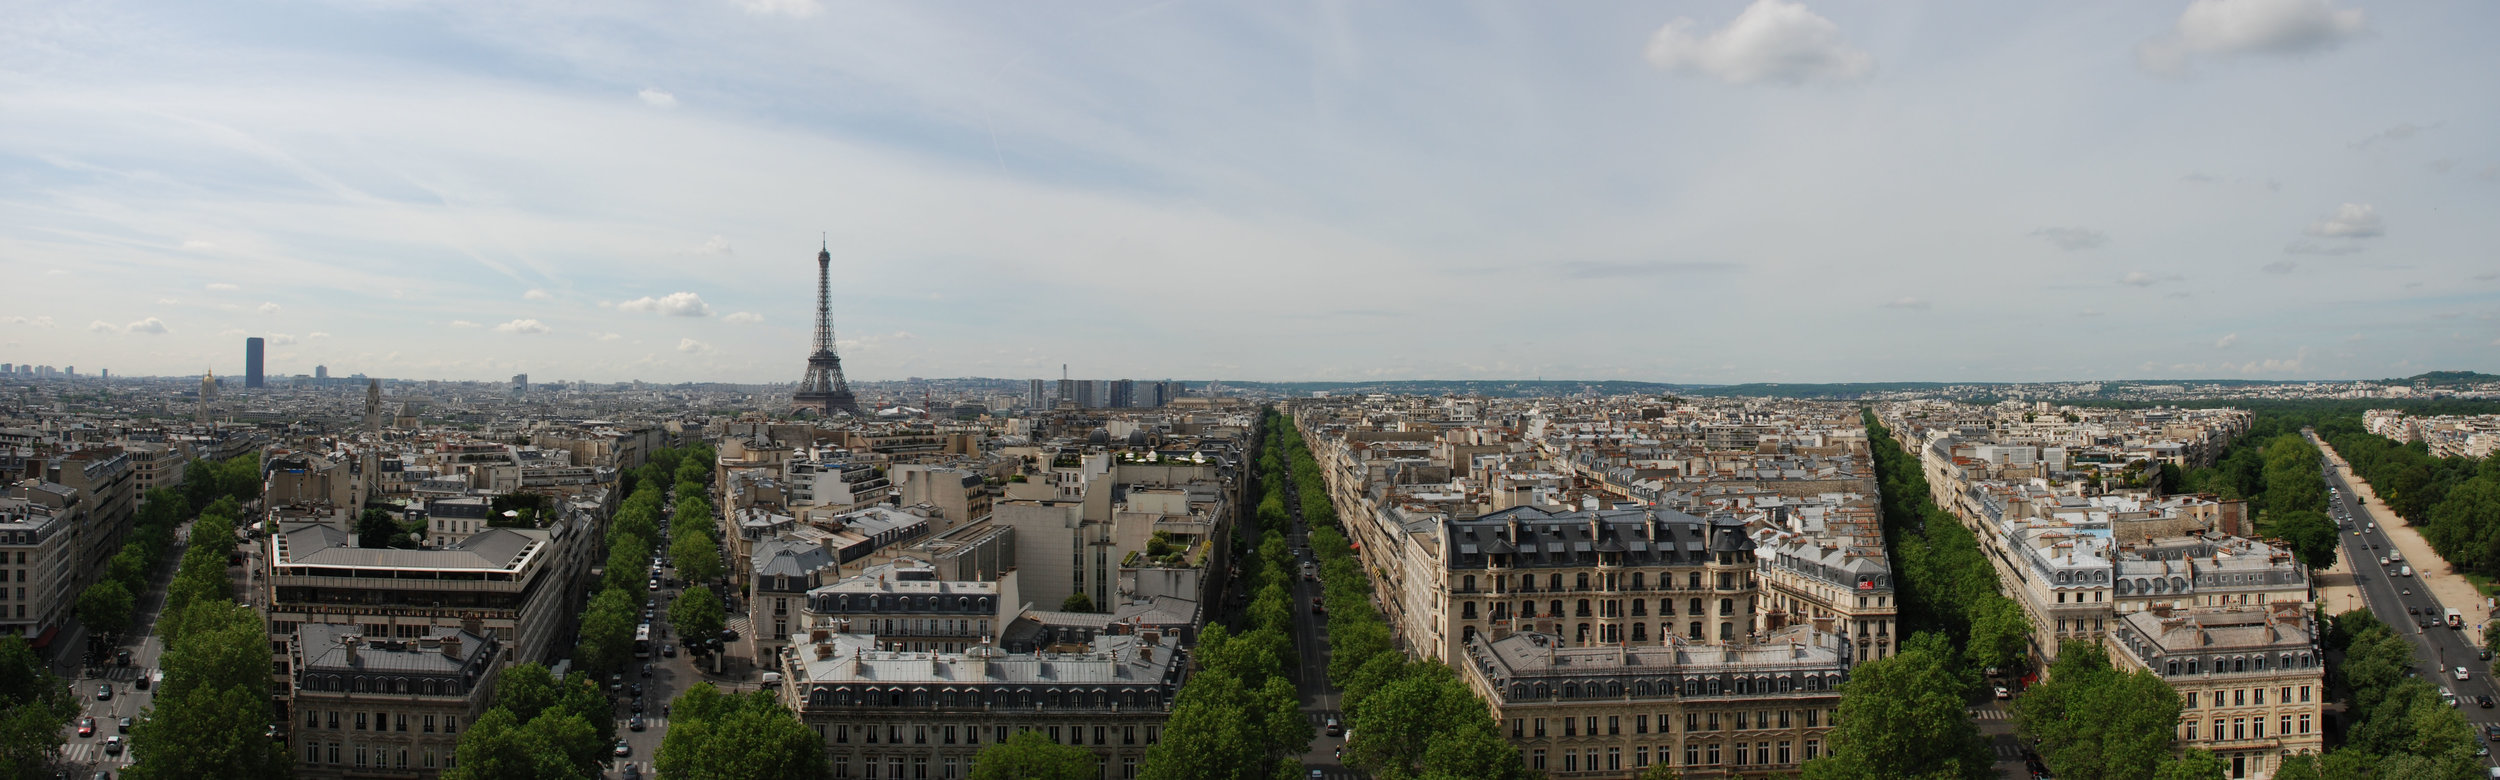 Panorama_of_Paris_from_top_of_Arc_de_Triomphe.jpg